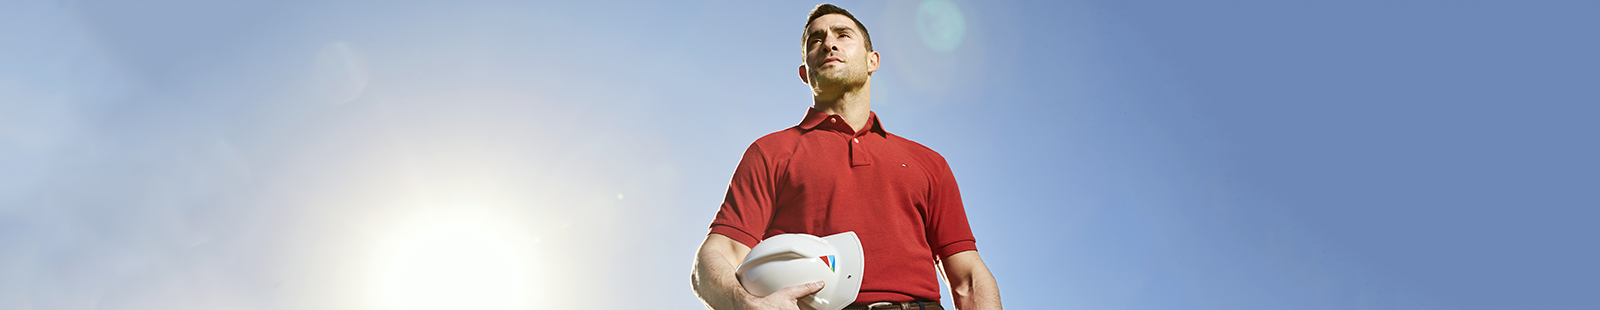 A man in a red shirt holding a hard hat.